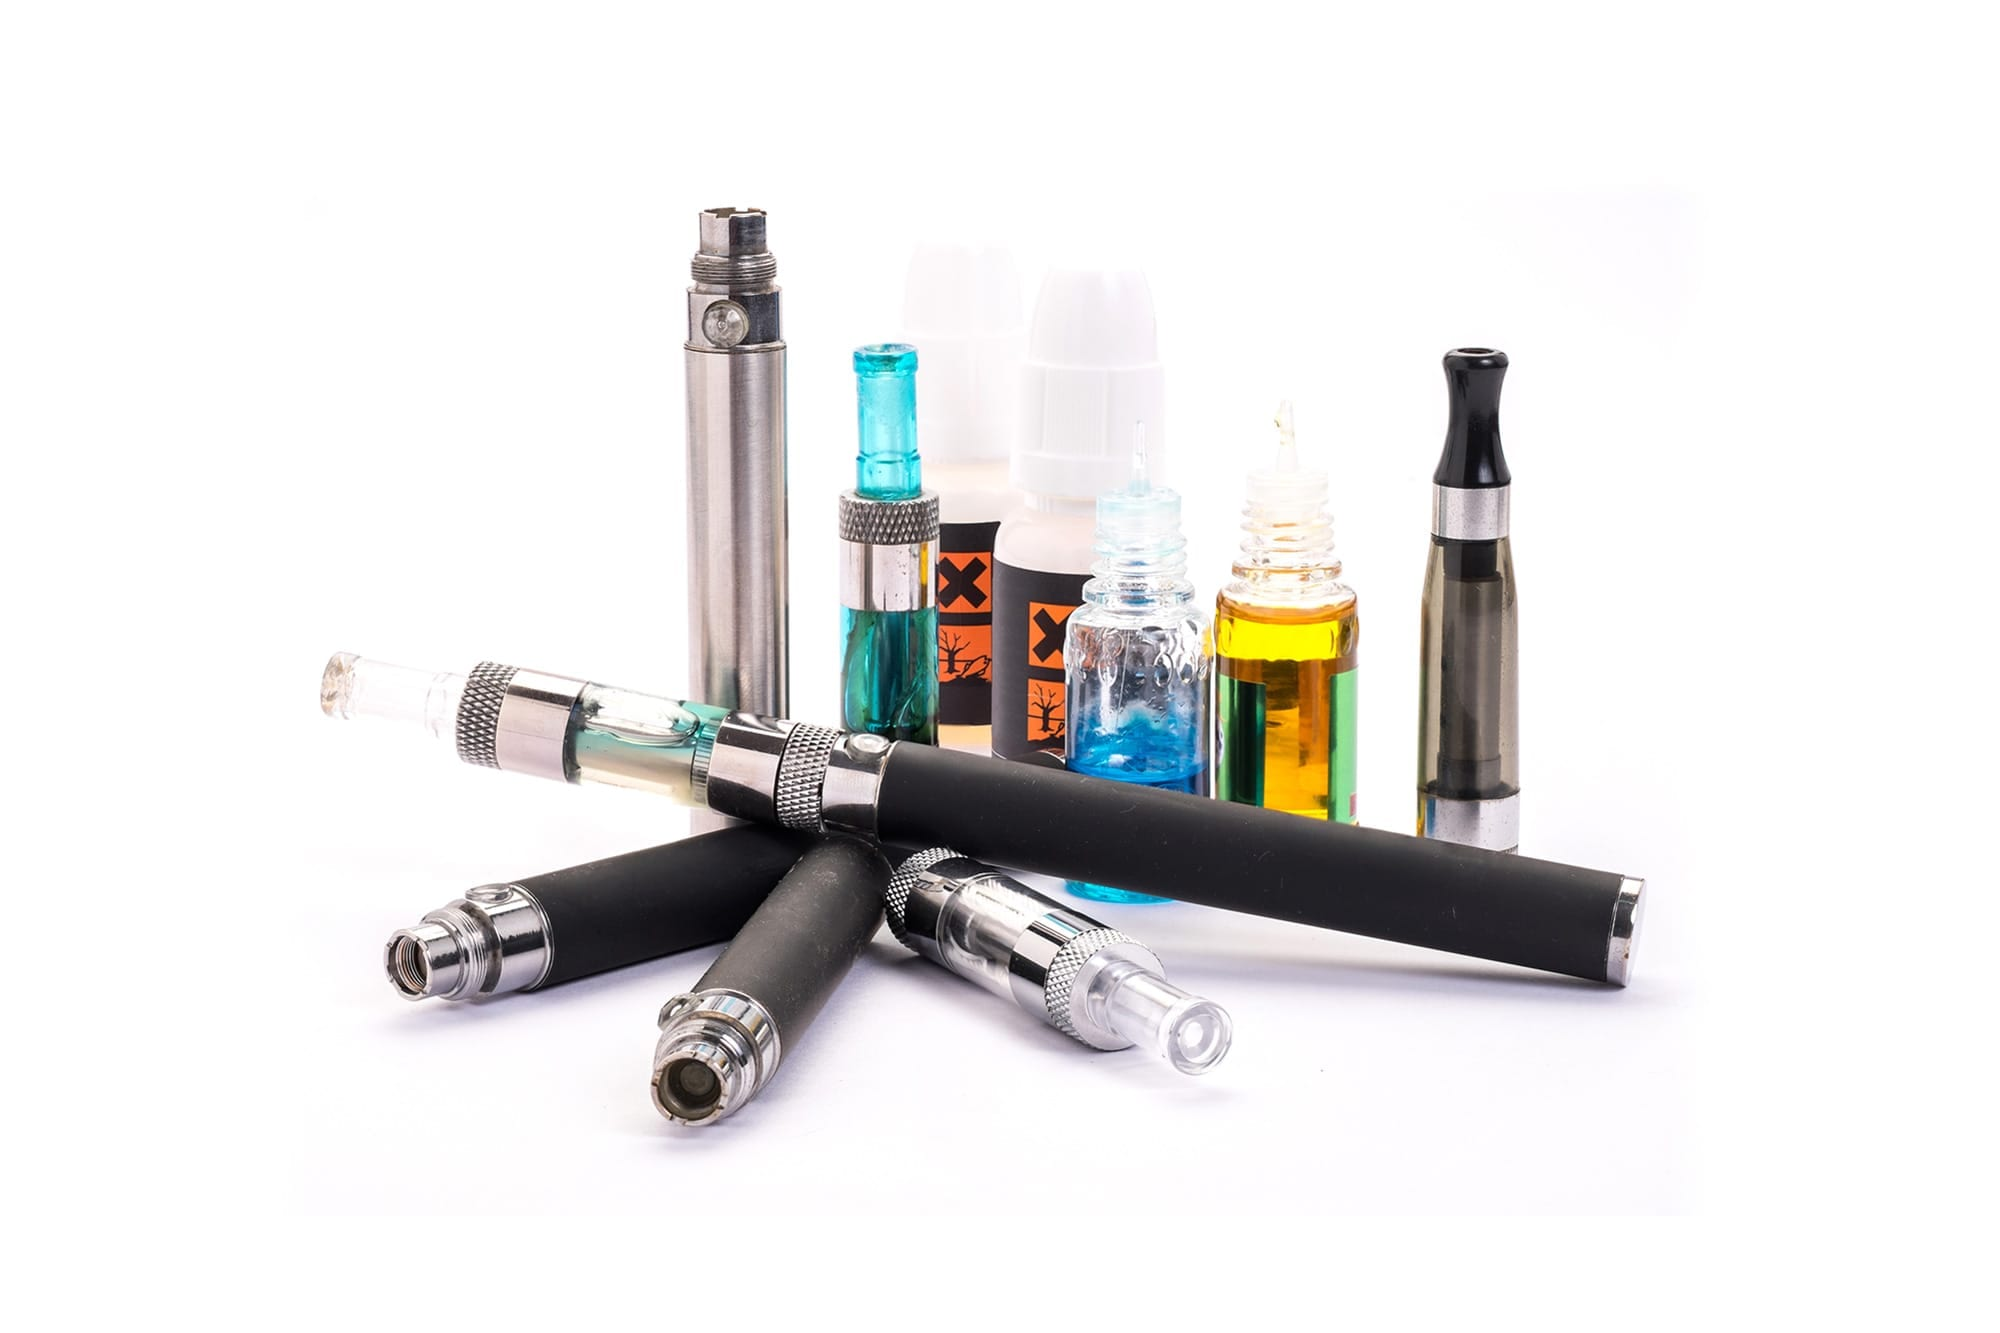 Vaping Chemicals Mix to Form New Toxic Compounds